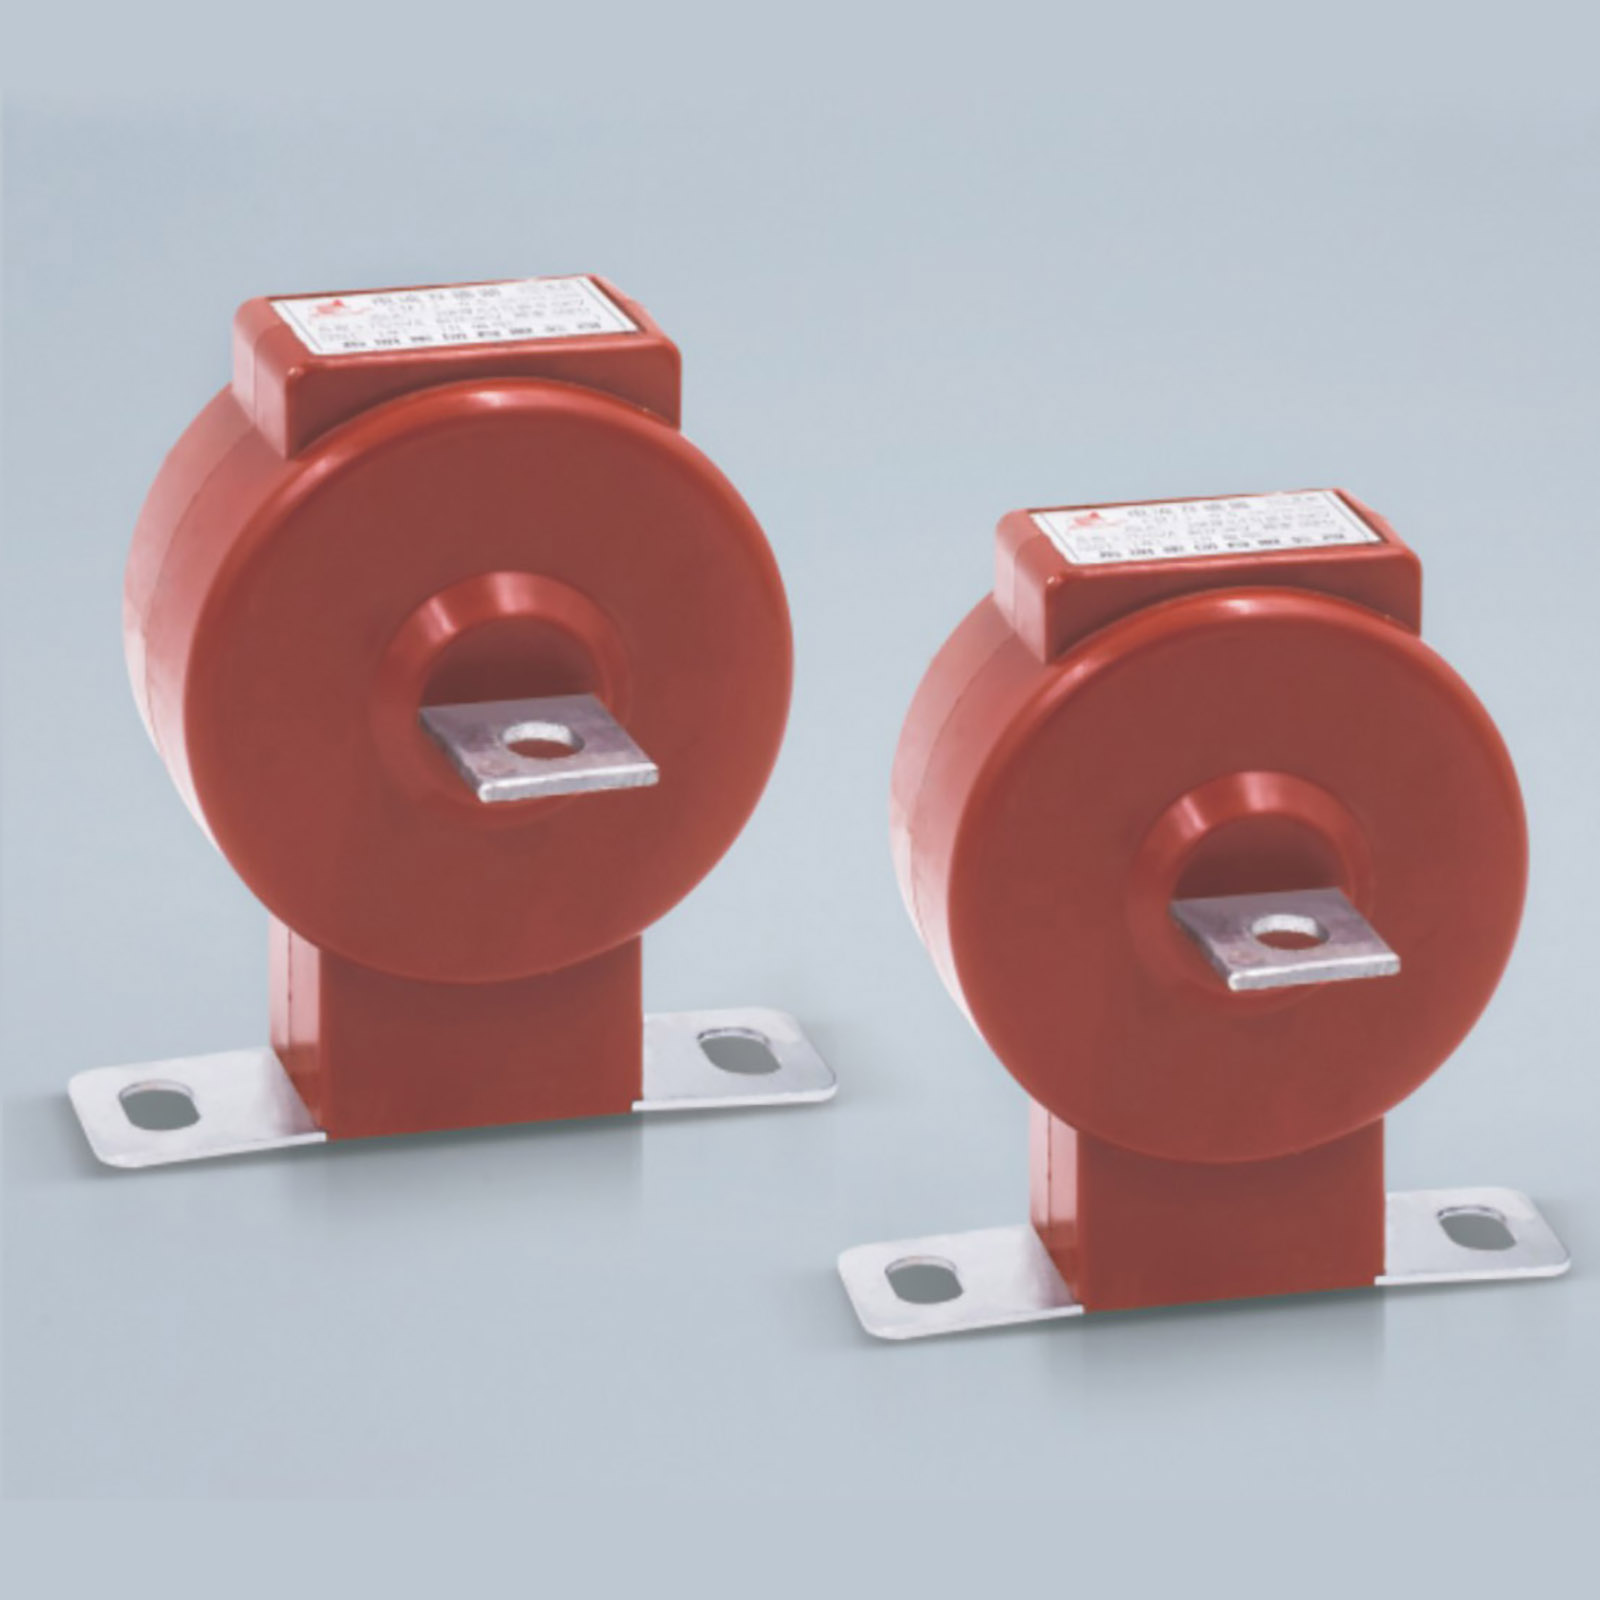 LMZJ1-0.5 Solid type Series Current Transformer